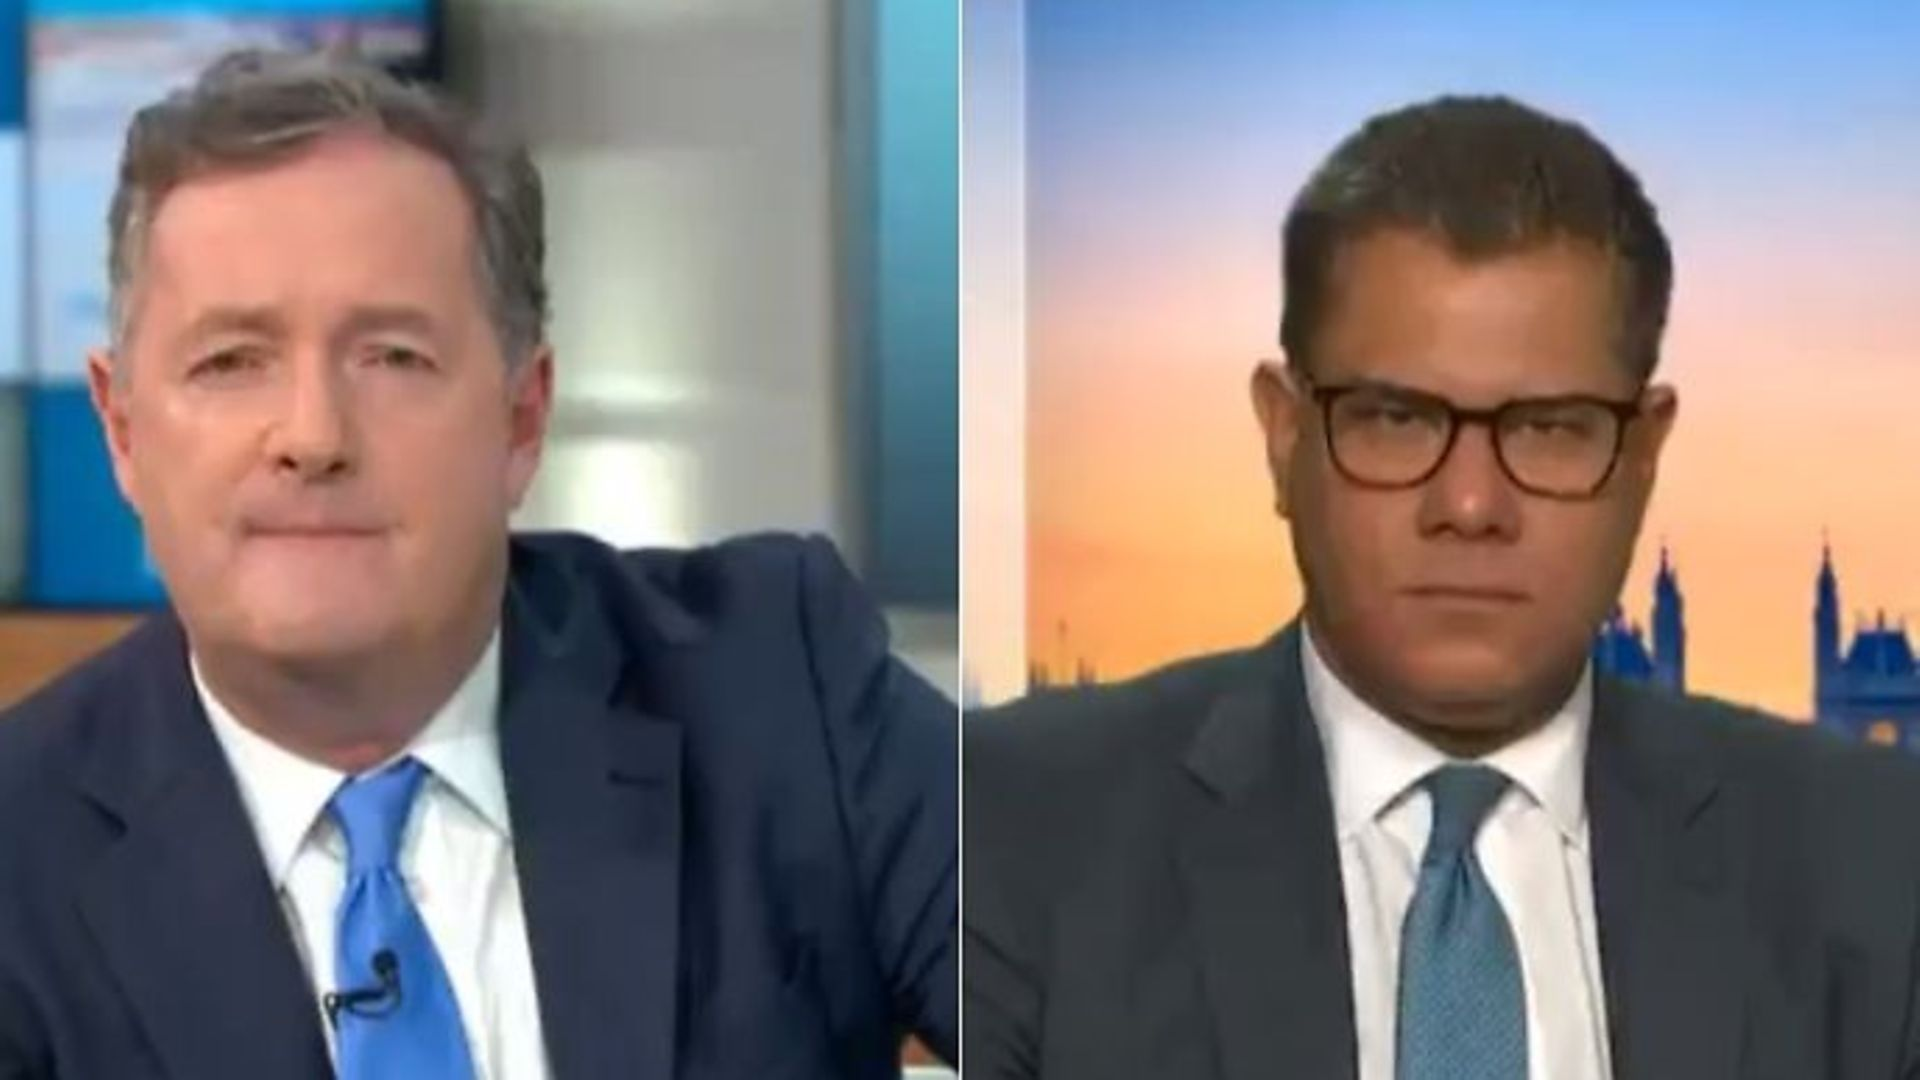 Piers Morgan (L) has clashed with the secretary of state for business, Alok Sharma, over the government's preparedness for a pandemic like Covid-19 - Credit: Twitter